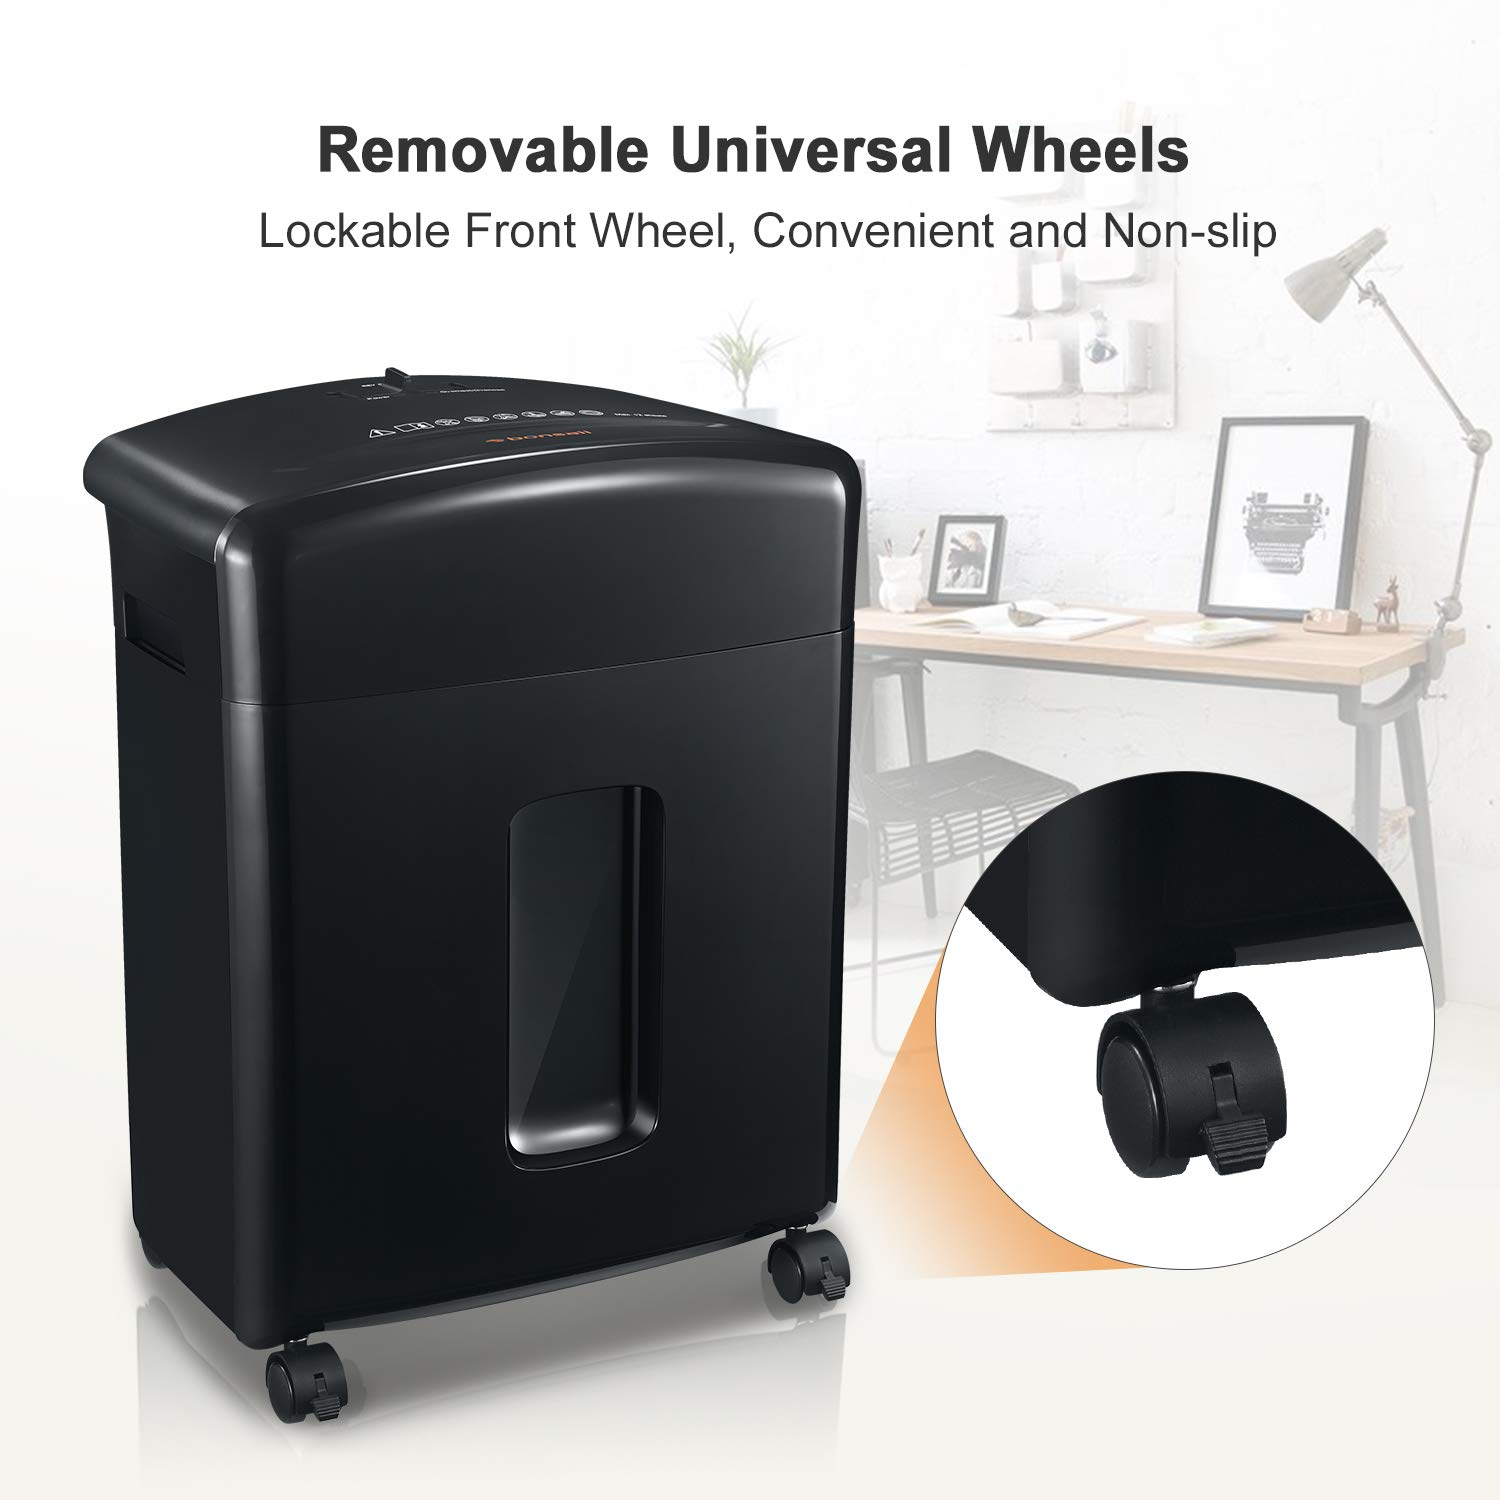 Bonsaii 12-Sheet Cross-Cut Paper, CD/DVD, and Credit Card Shredder with 3.5-gallons Pullout Basket, Black (C220-A) by bonsaii (Image #5)